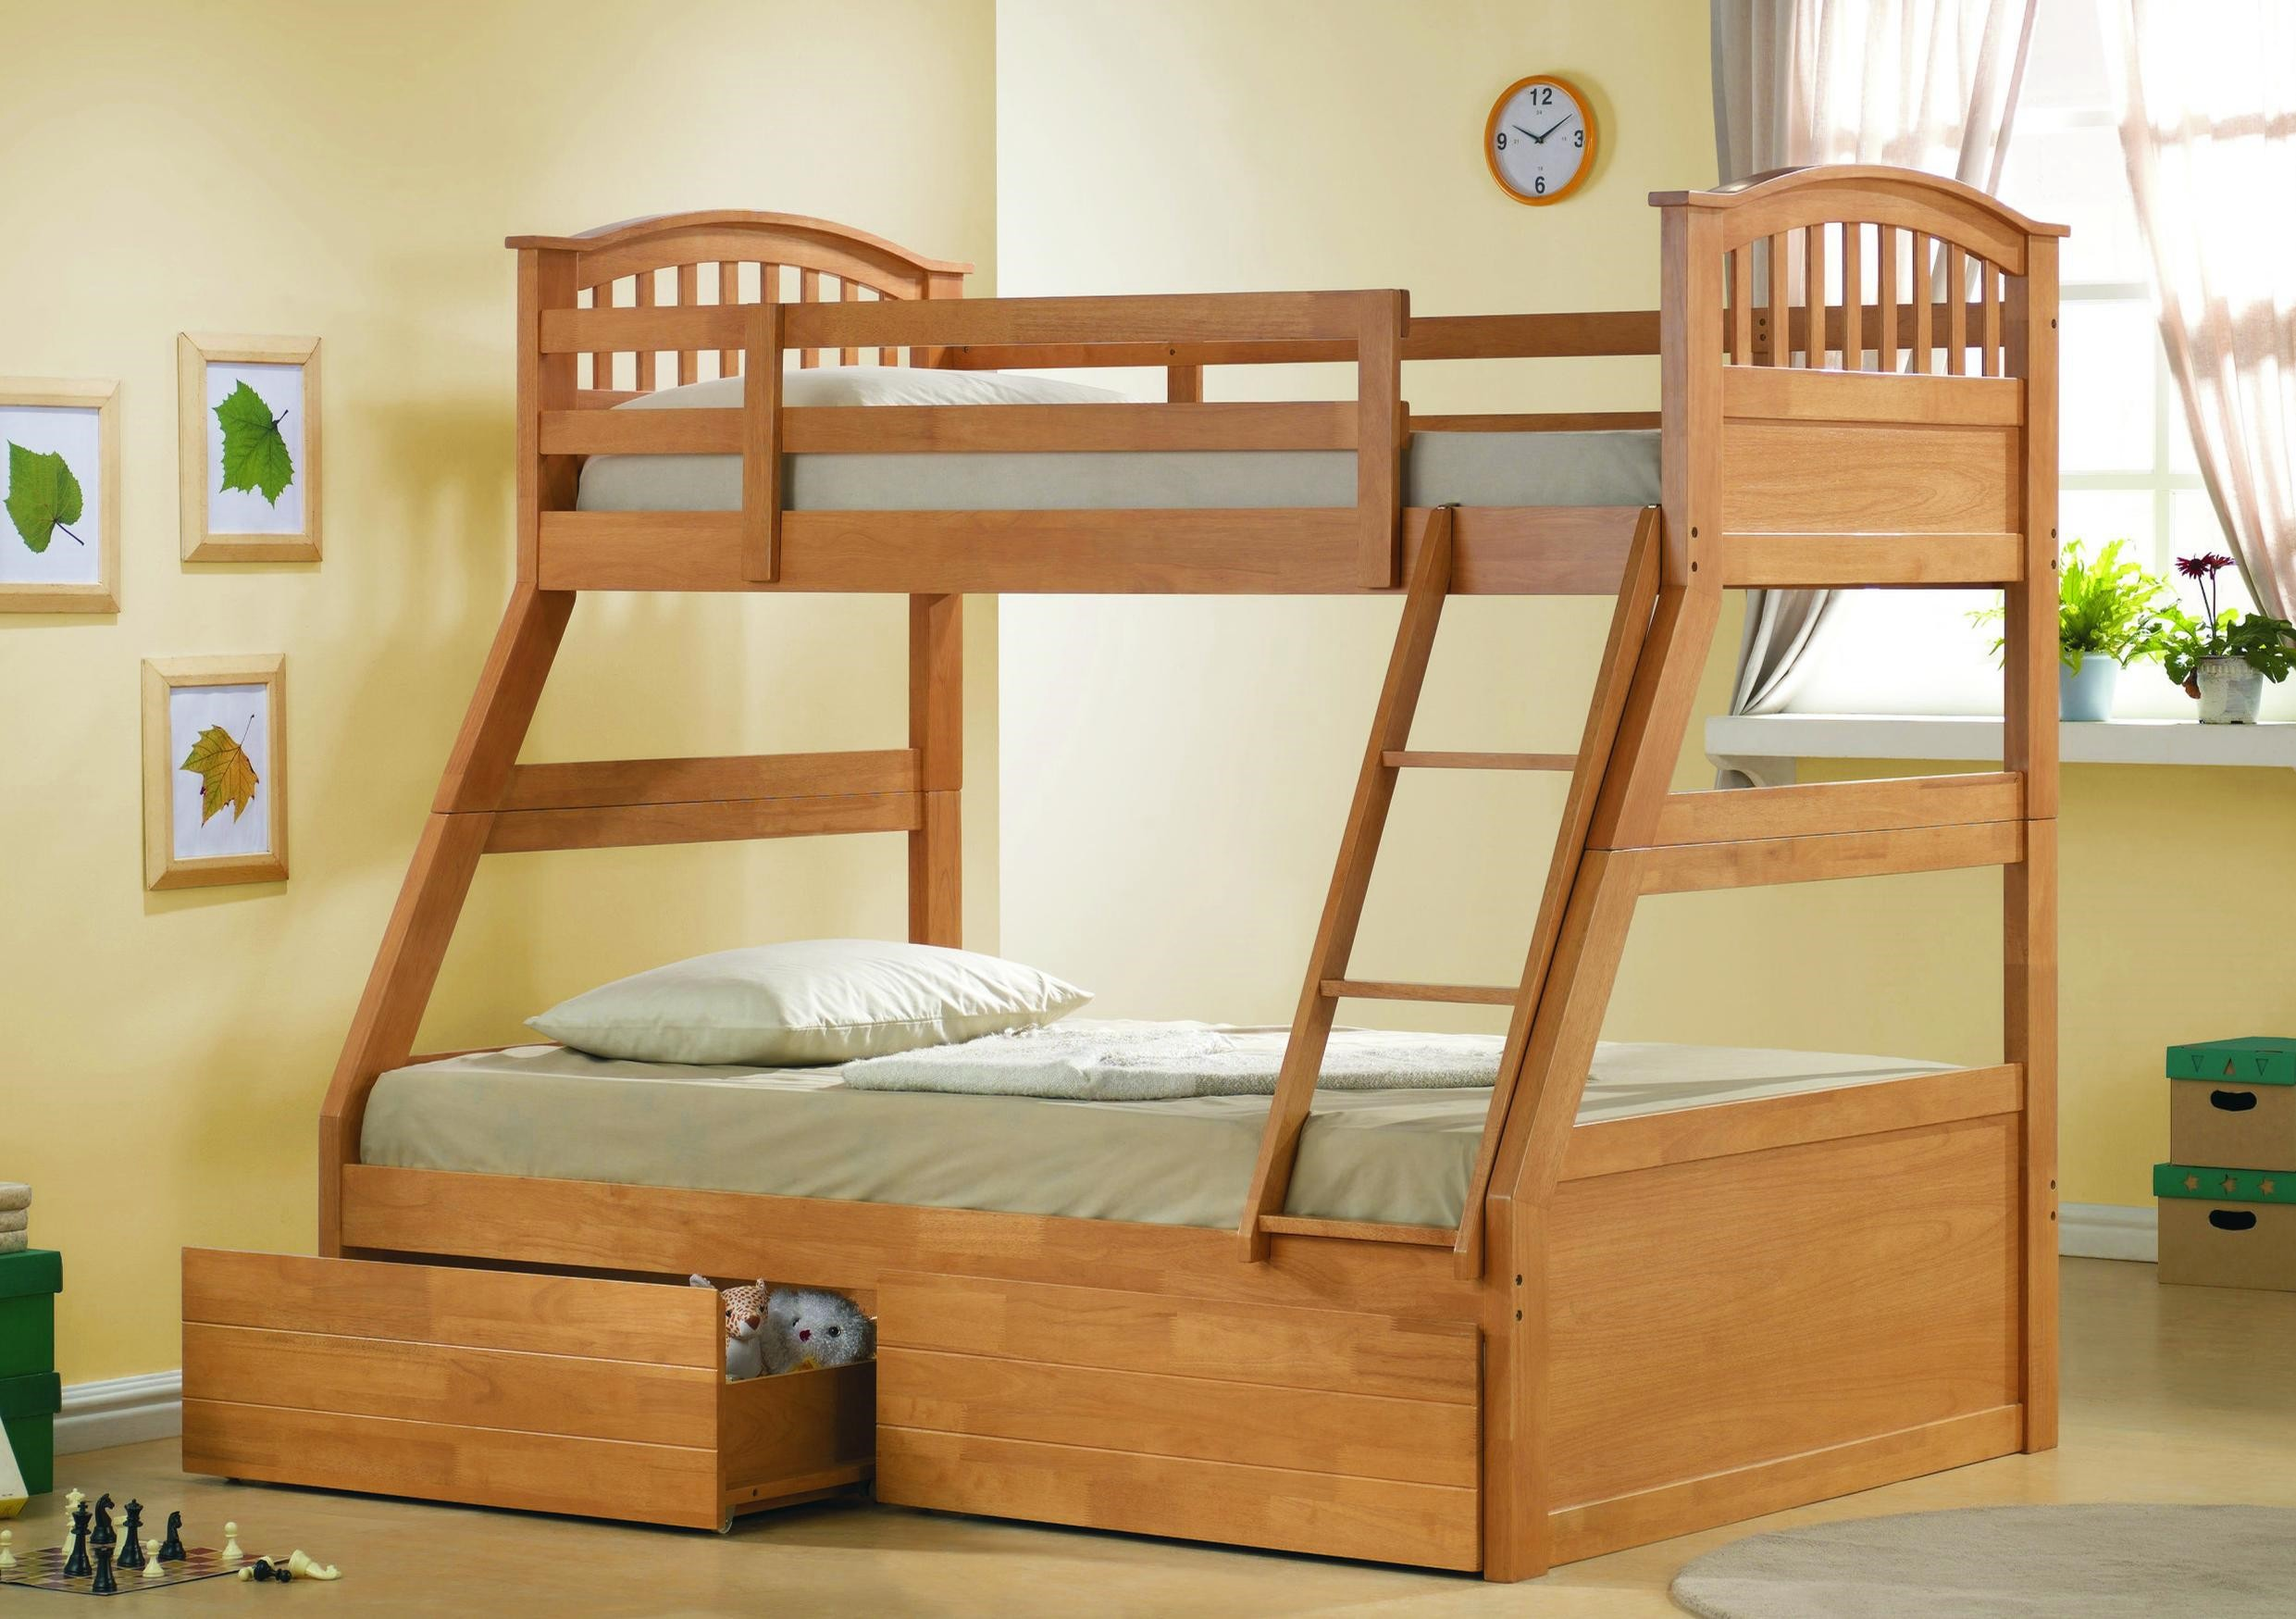 Cool Beds For Kids Cool Beds